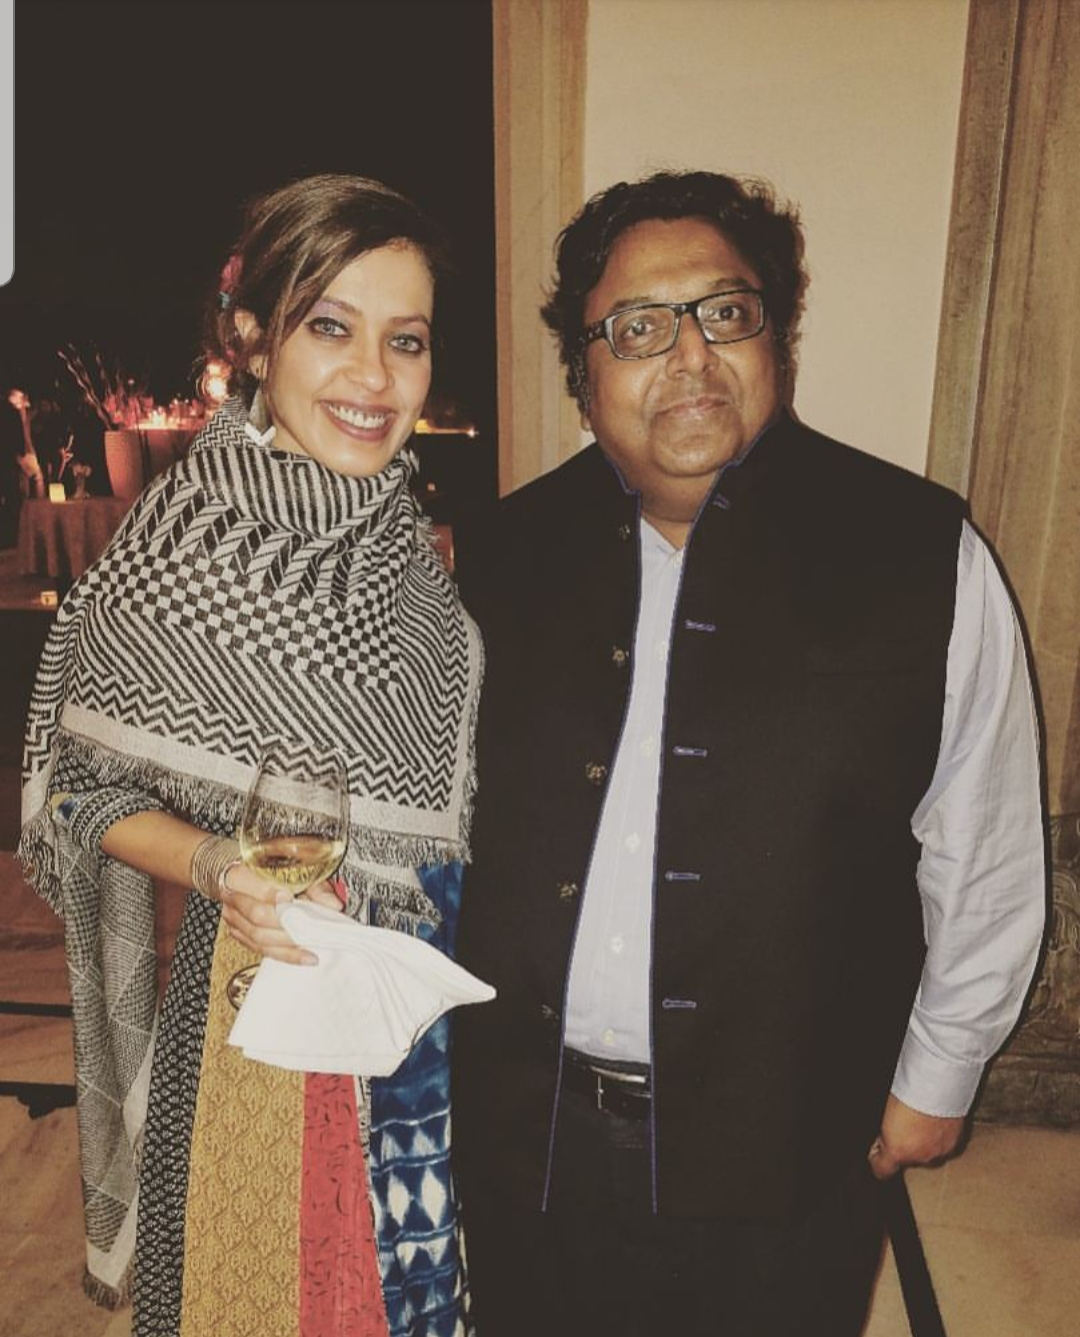 JAIPUR LITERATURE FESTIVAL.JAIPUR, INDIA. 2018 - With Ashwin Sanghi, one of India's most favorite fiction thriller authors at a private event in ZEE JLF, and I immensely enjoyed our conversation, where he shared his adventures from a book research expedition, among other things!KEYWORDS: Ashwin Sanghi, Nish Amarnath, Jaipur Lit Fest, Jaipur Literature Festival, ZEE JLF, Nischinta Amarnath, Victims For Sale, thrillers, fiction, fiction authors, bestselling authors.